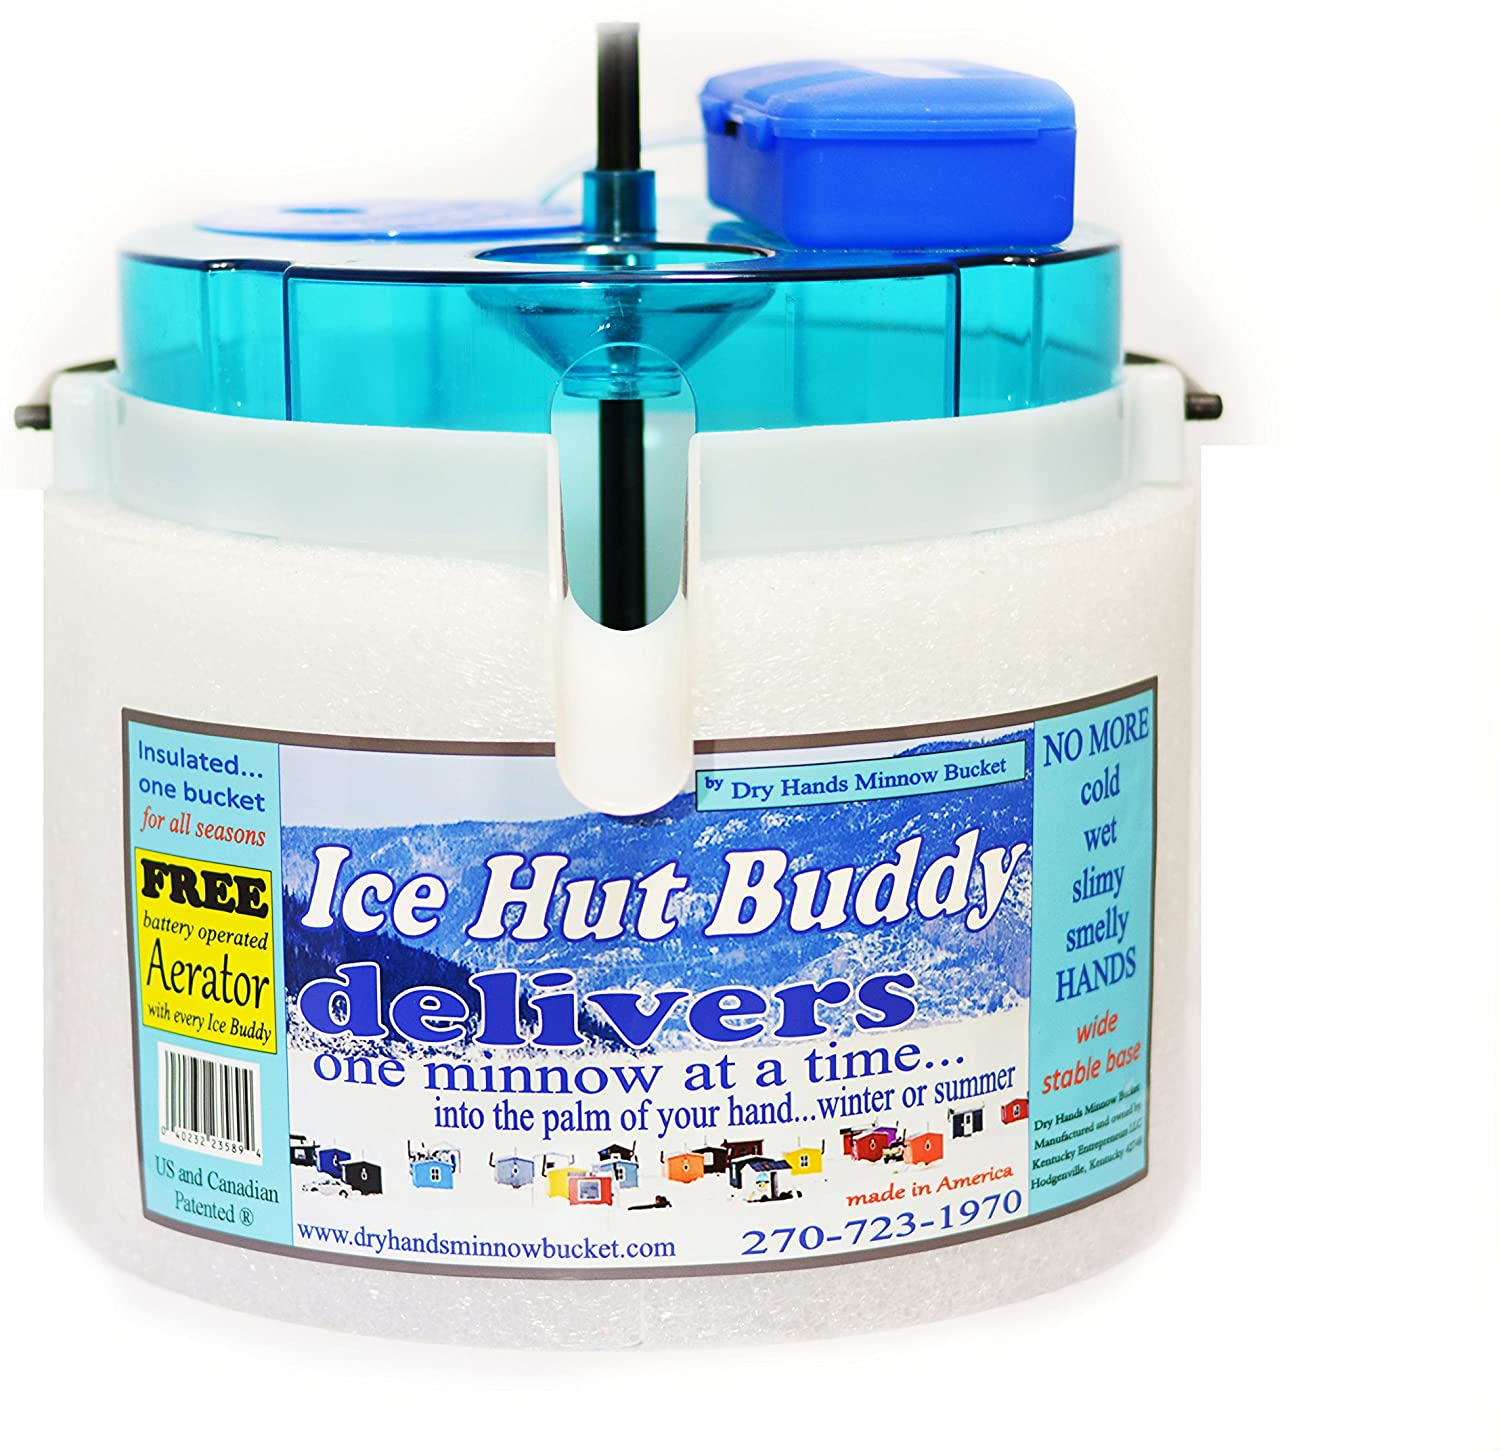 Dry Hands Dispensing Ice Hut Buddy Includes D-Battery Operated Bubble Stone Aerator (White)